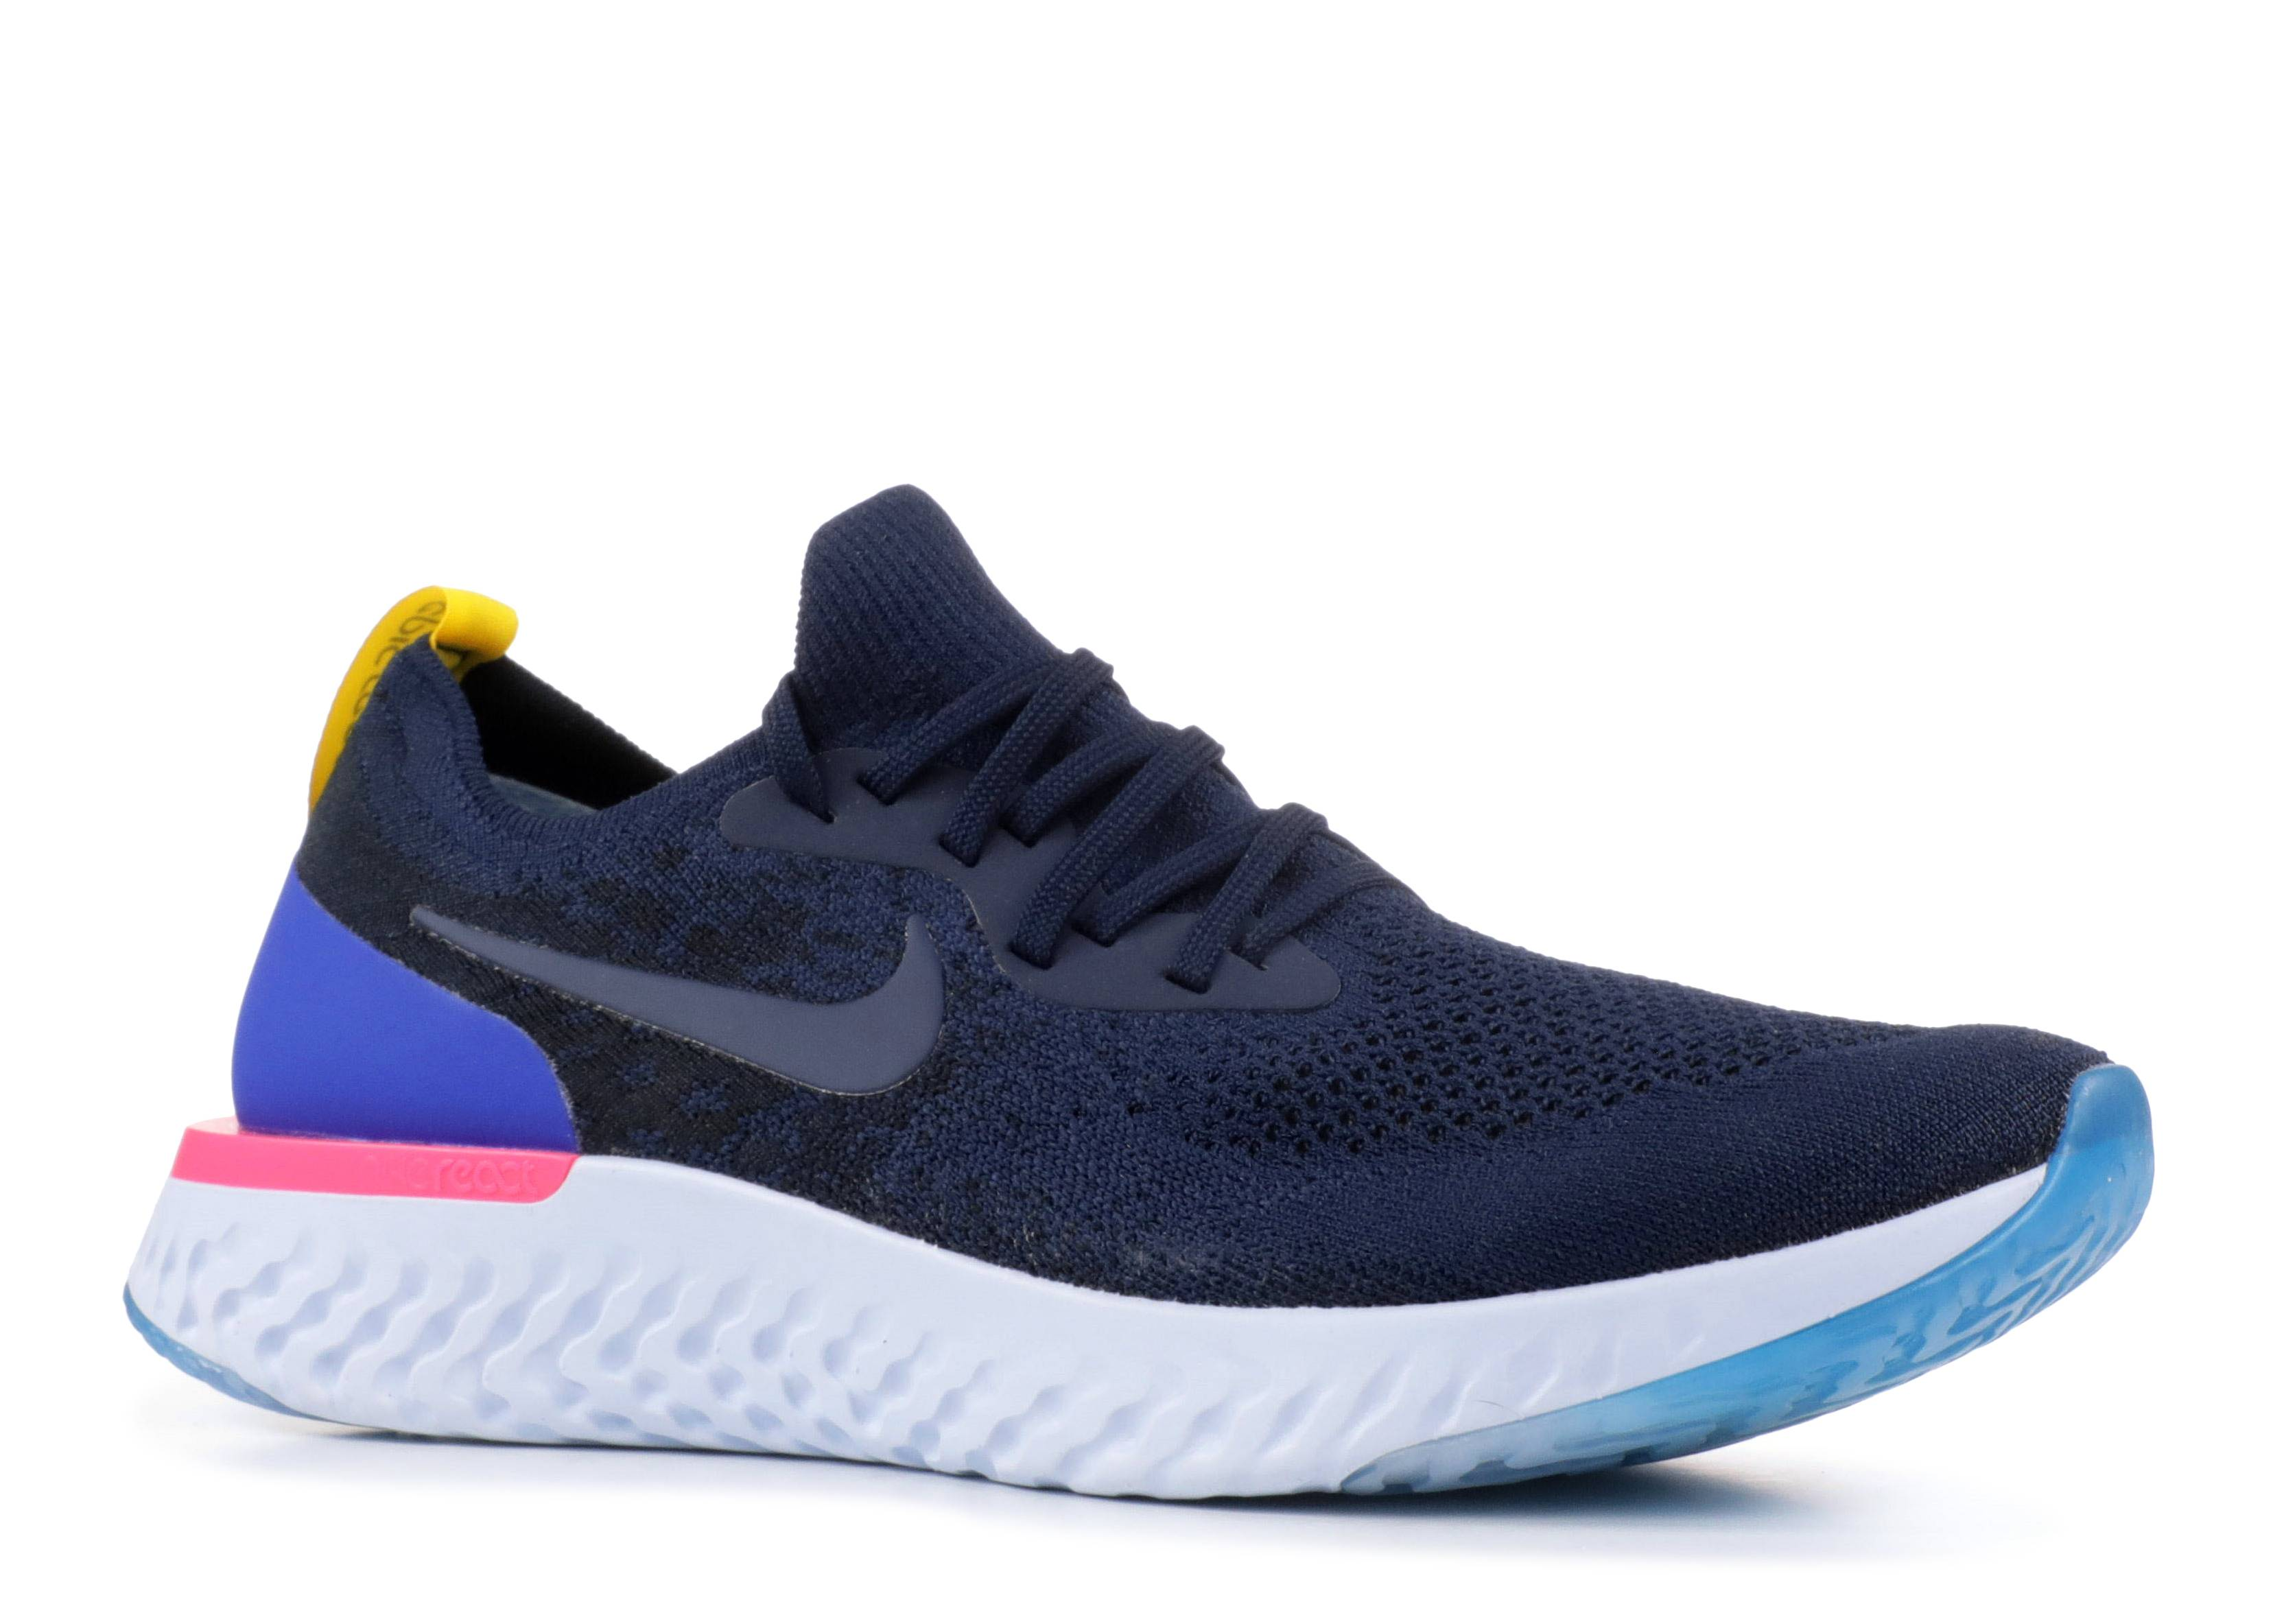 5b39a666d697 Nike Epic React Flyknit - Nike - aq0067 400 - college navy college navy